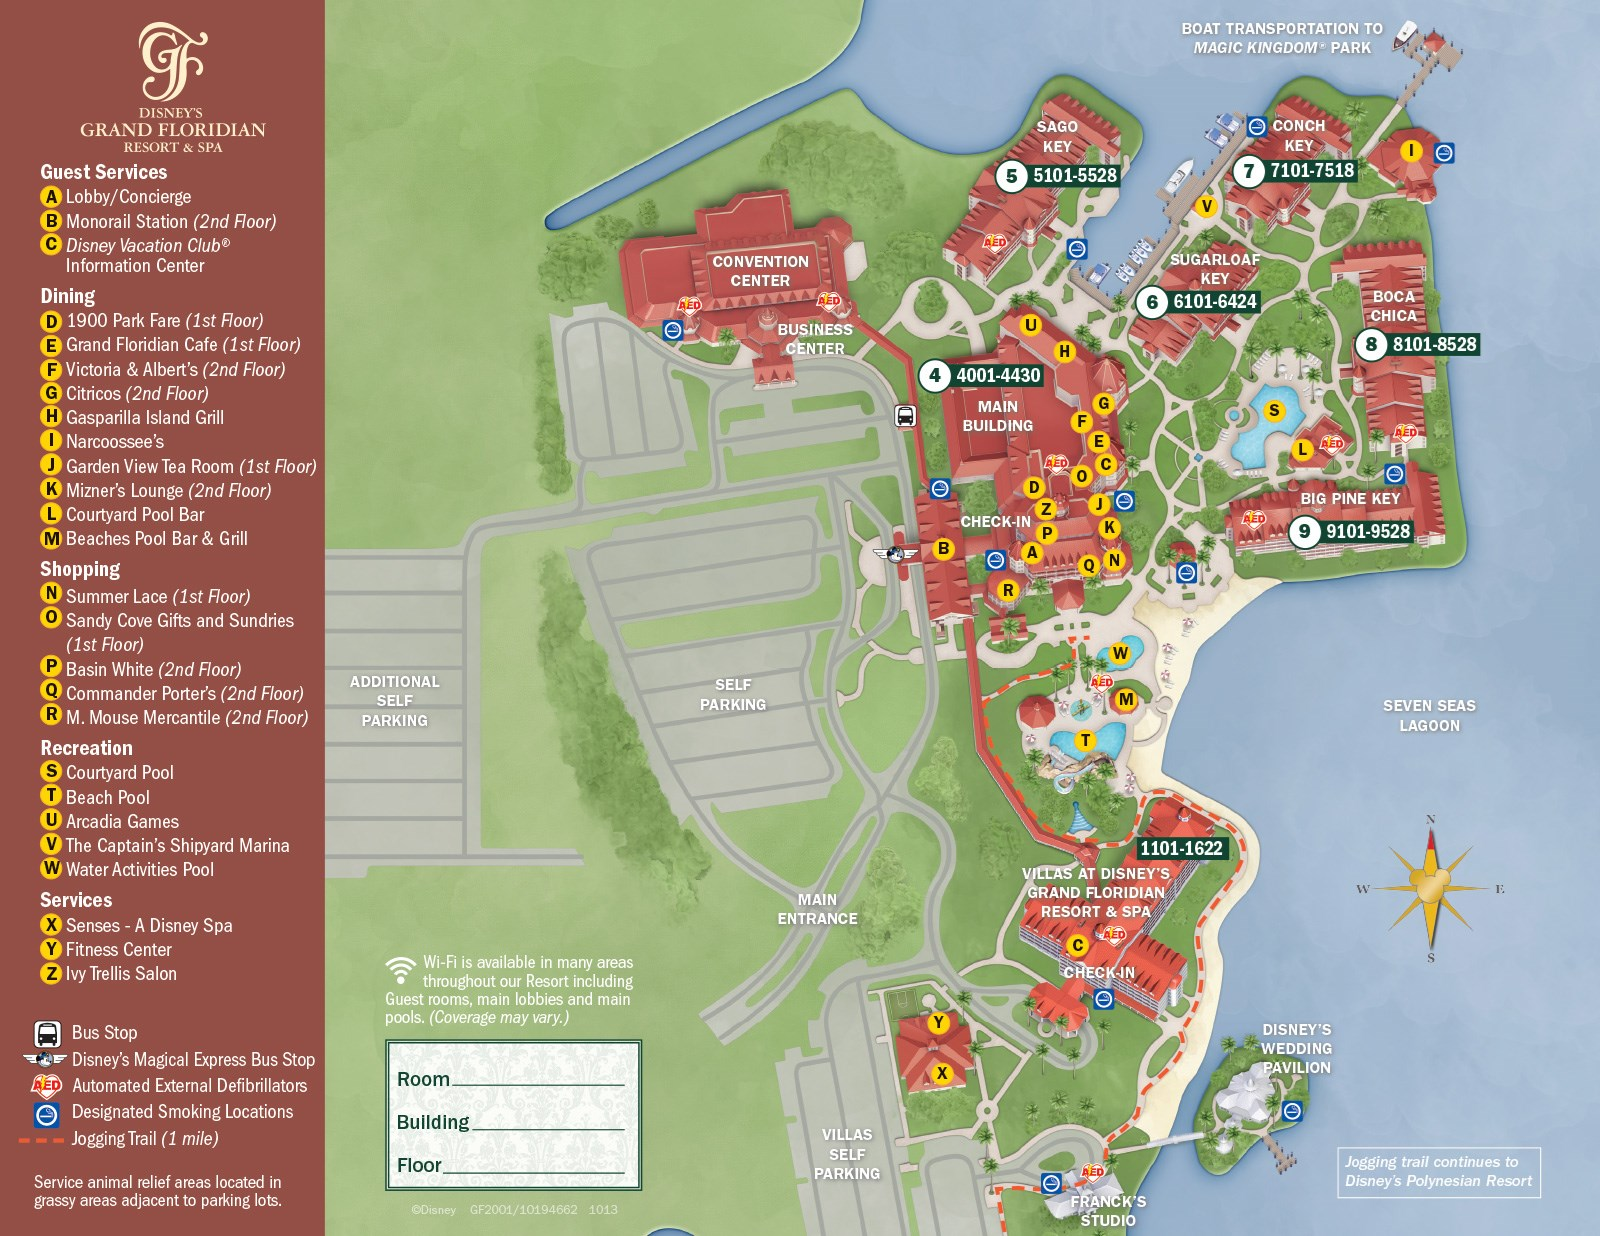 2013 Grand Floridian guide map